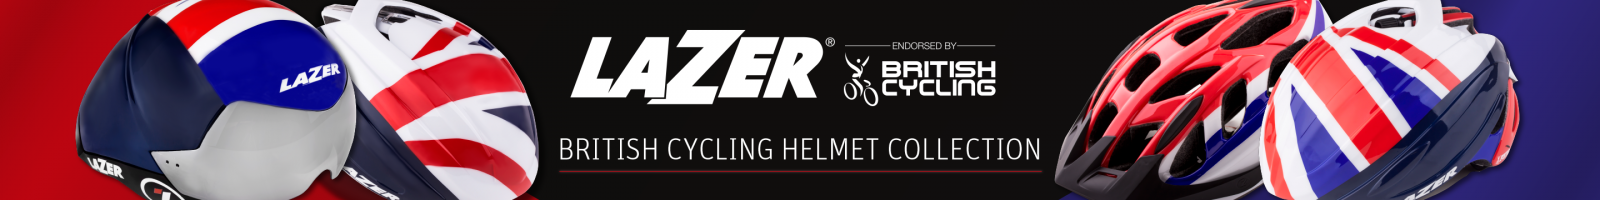 British Cycling Lazer Helmets